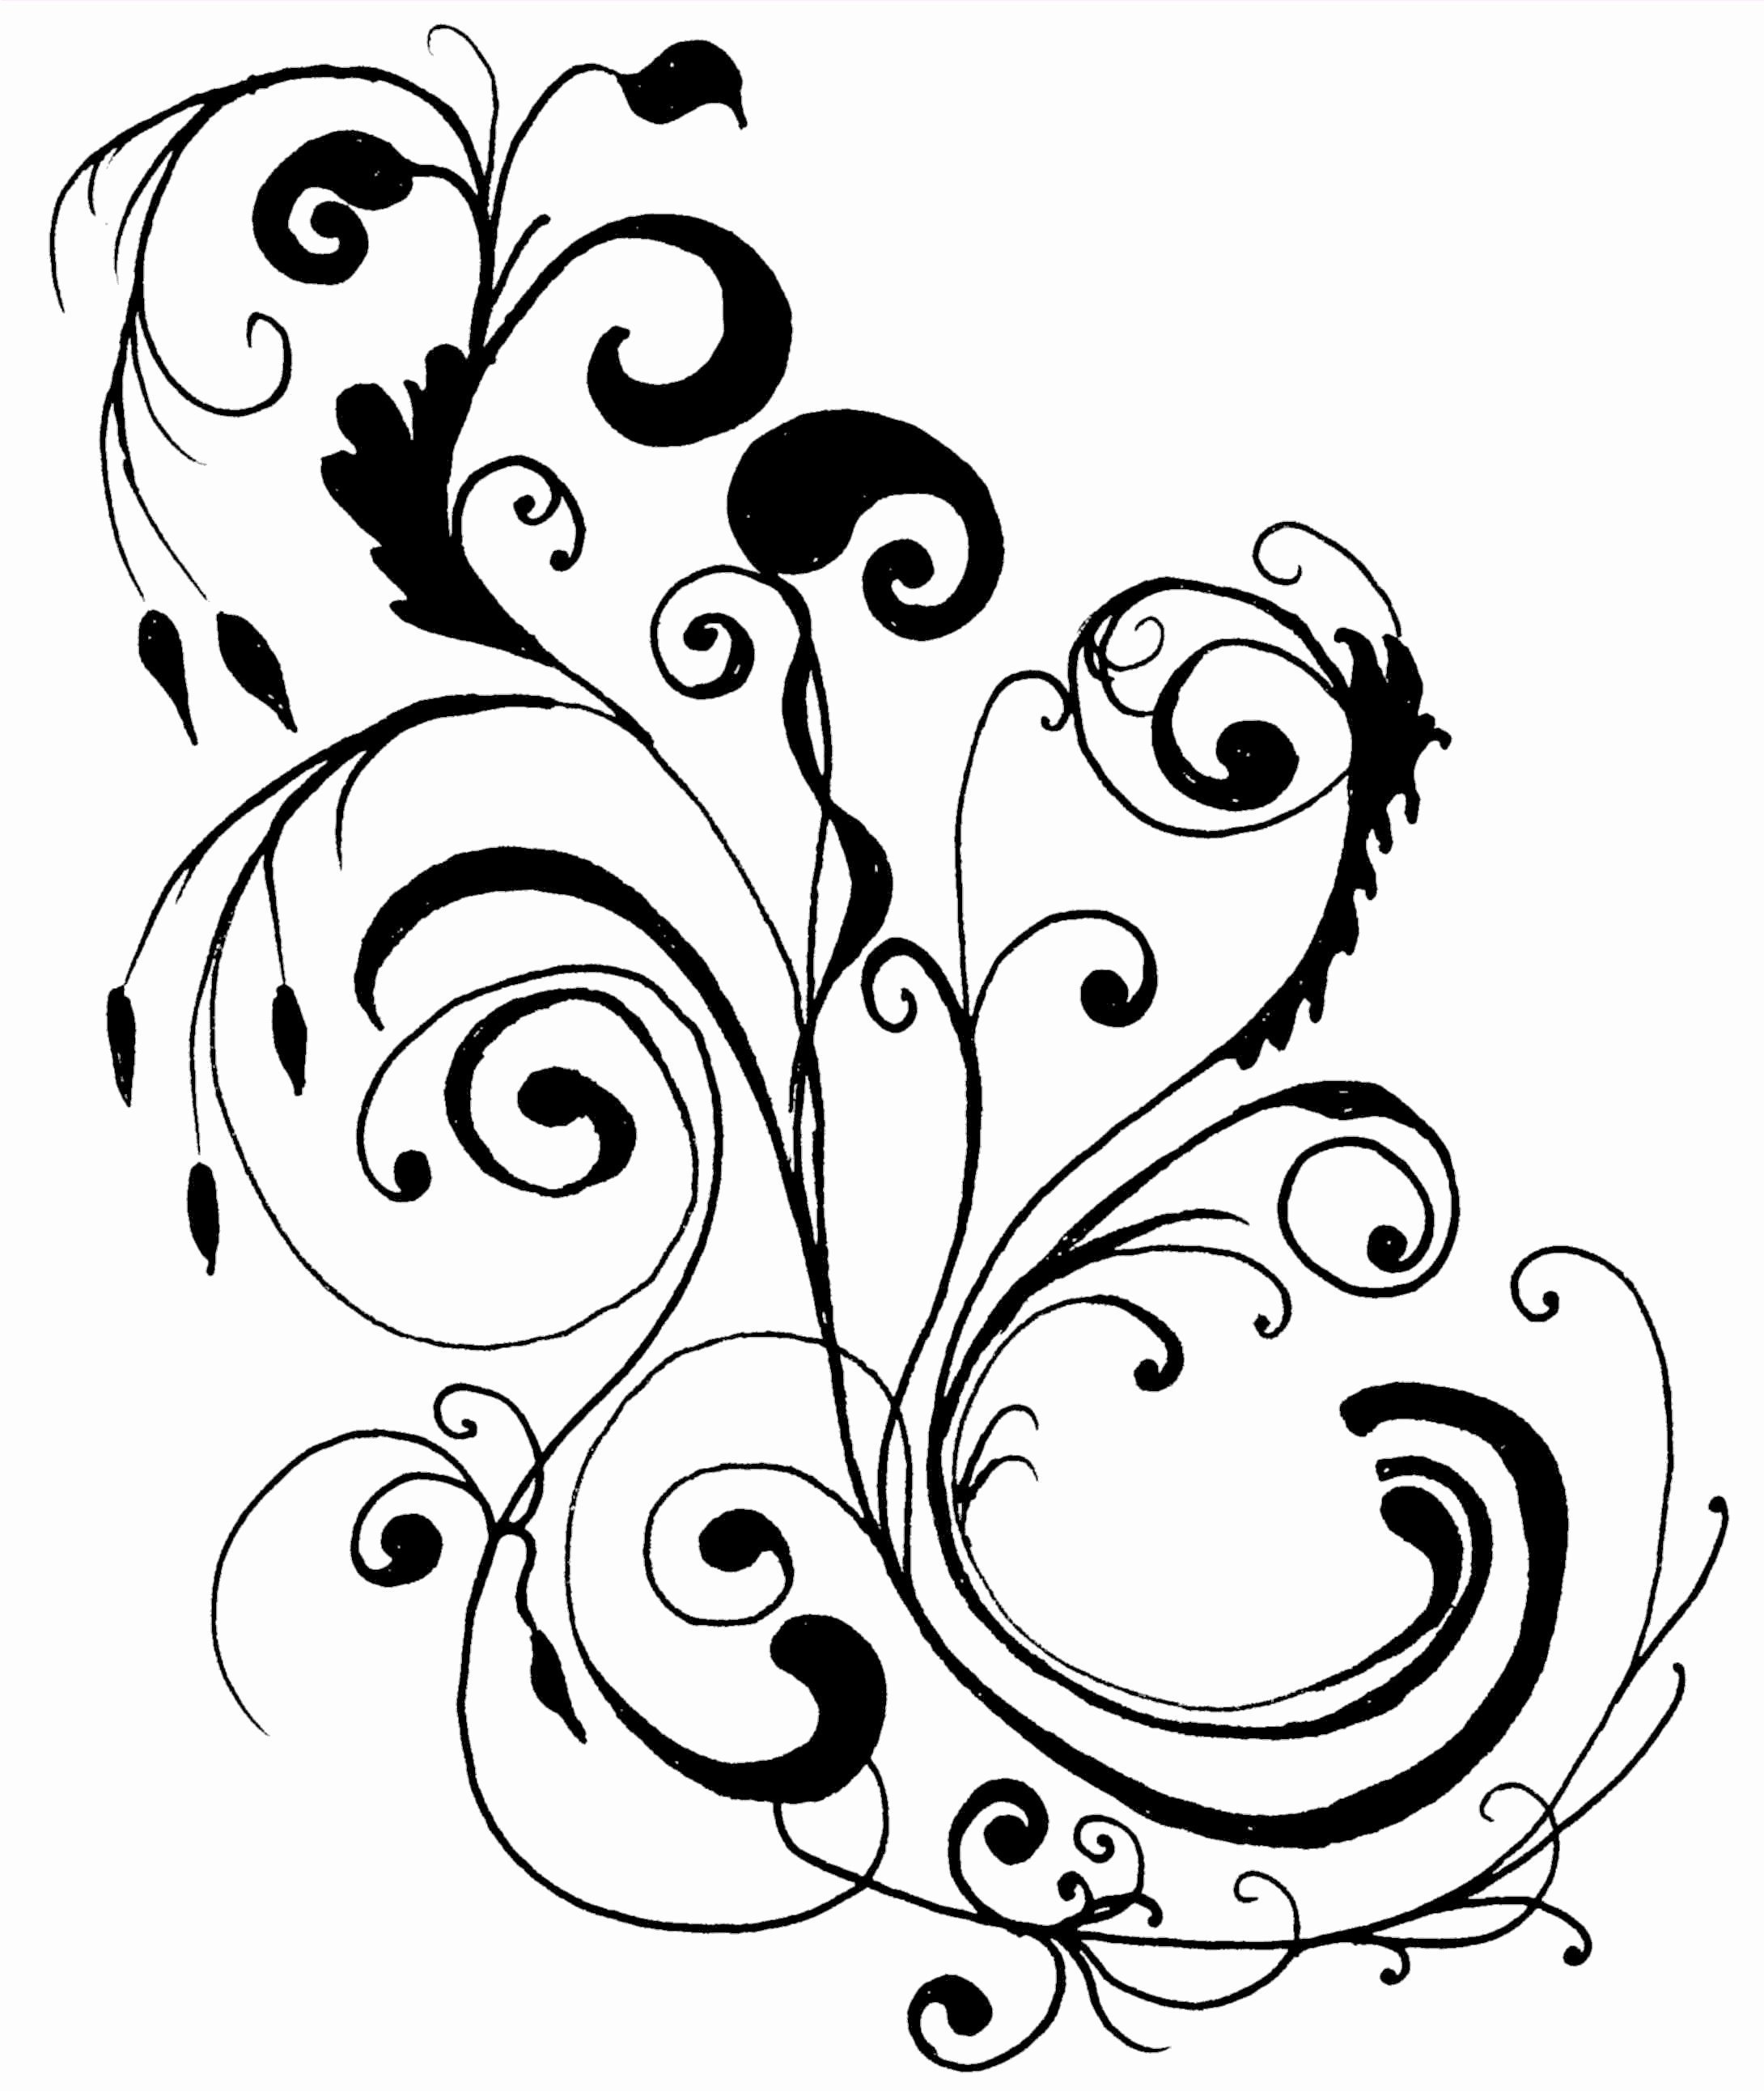 Black and White Designs Art Awesome 40 Stunning Free Clip Art Borders